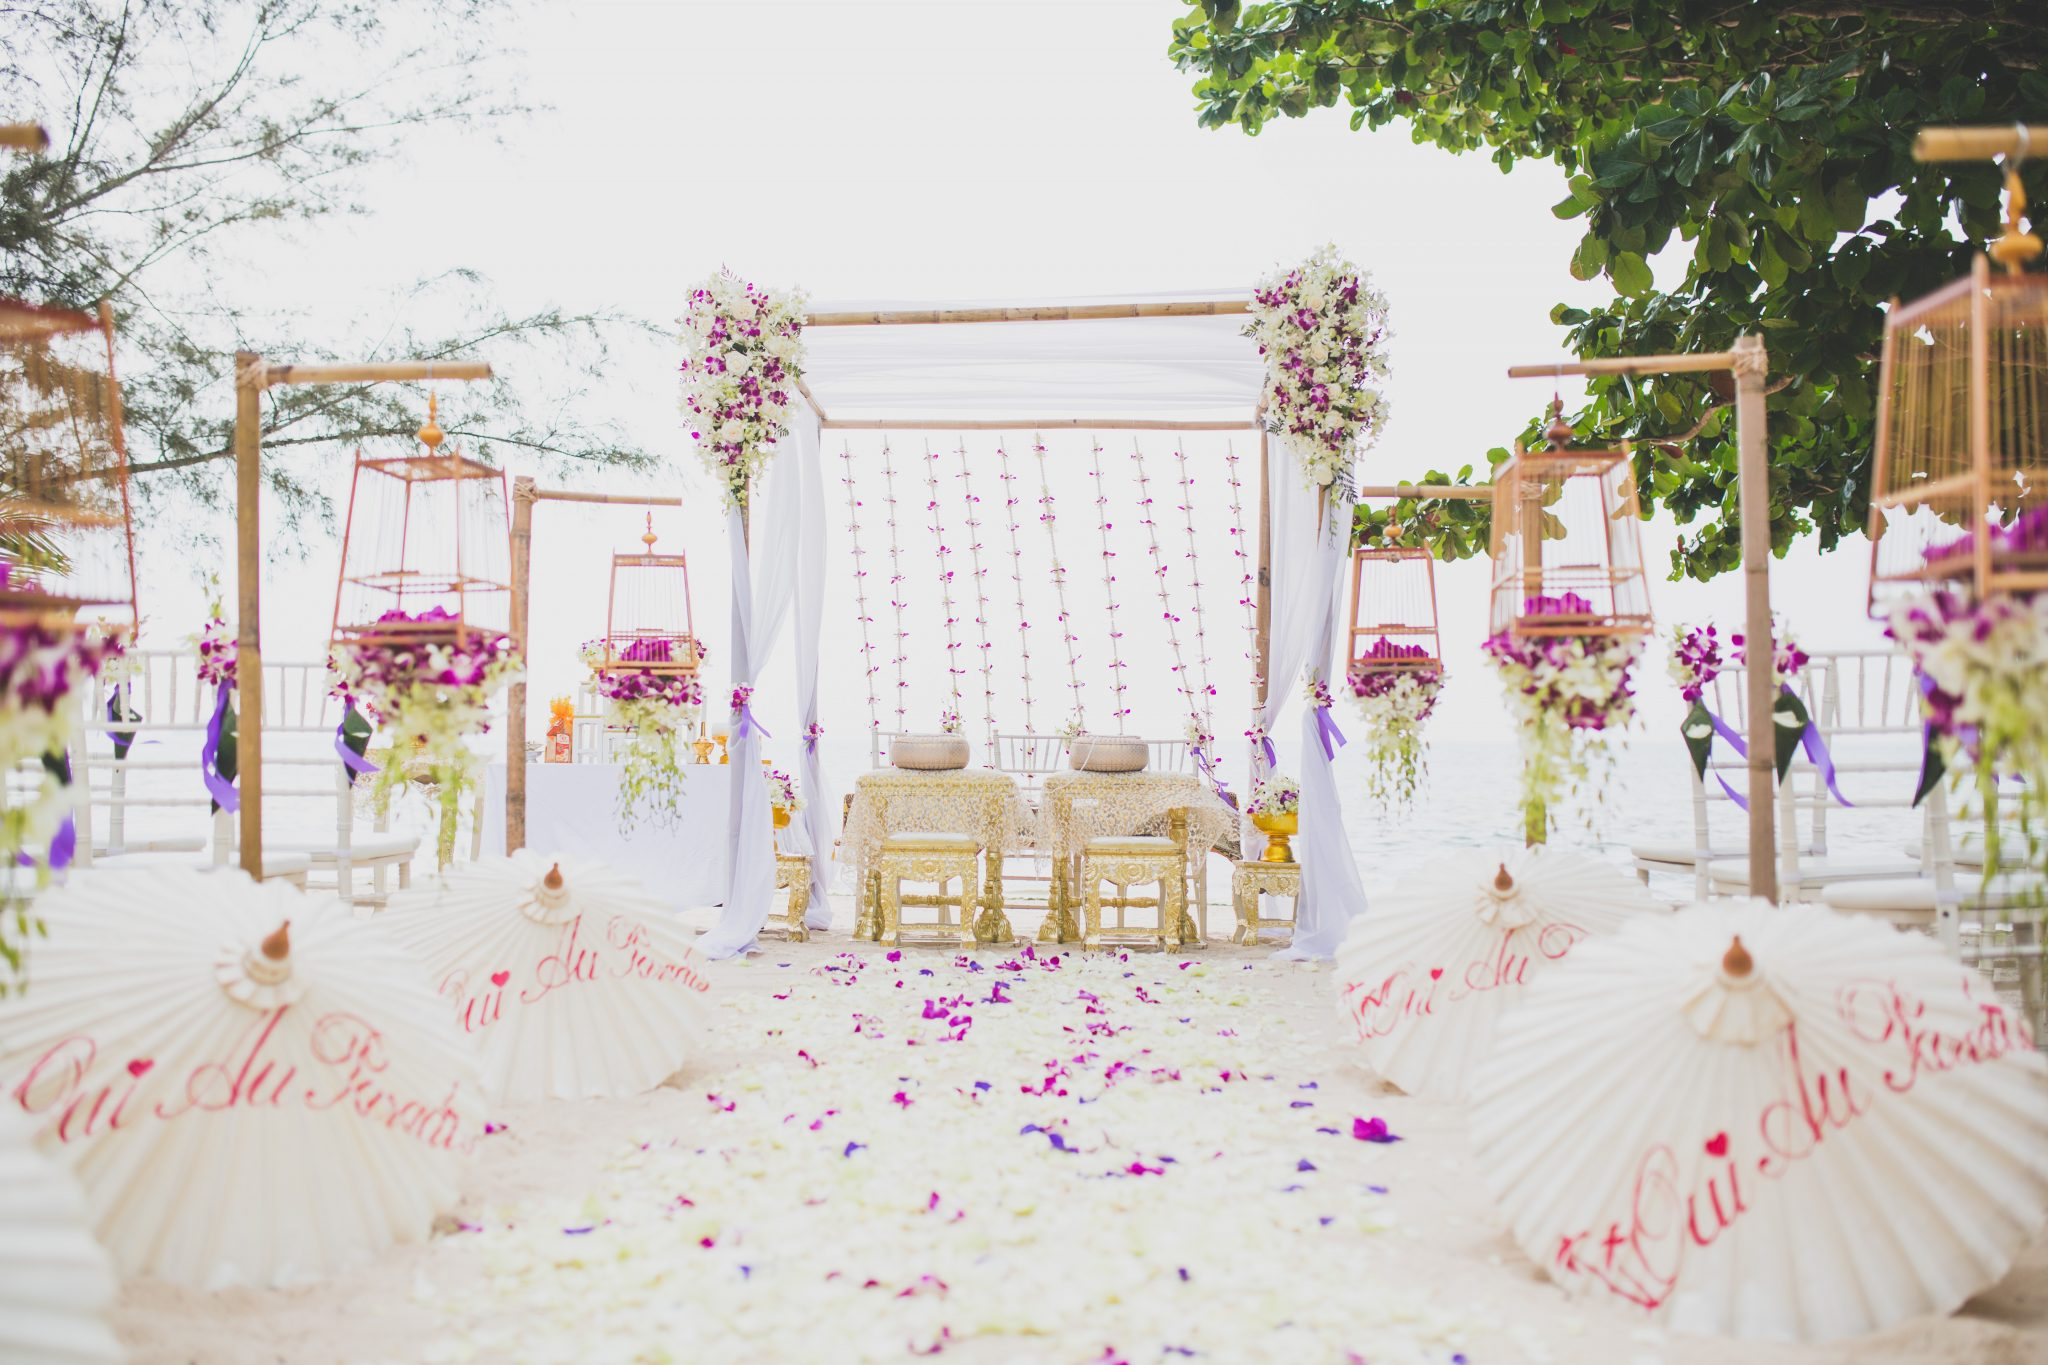 Organisation-Mariage-marier-maries-mariee-ceremonie-Thailande-Plage-ile-Koh-Samui-Island-thai-evenementiel-evenements-demande-fiancailles-EVJF-EVG-noces-voyages-Wedding-ceremony-Planner-Thailand-Beach-Events-event-request-bachelor-bachelorette-groom-bride-bridal-chairs-tables-flowers-candles-chaises-tables-fleurs-bougies-gazebo-50